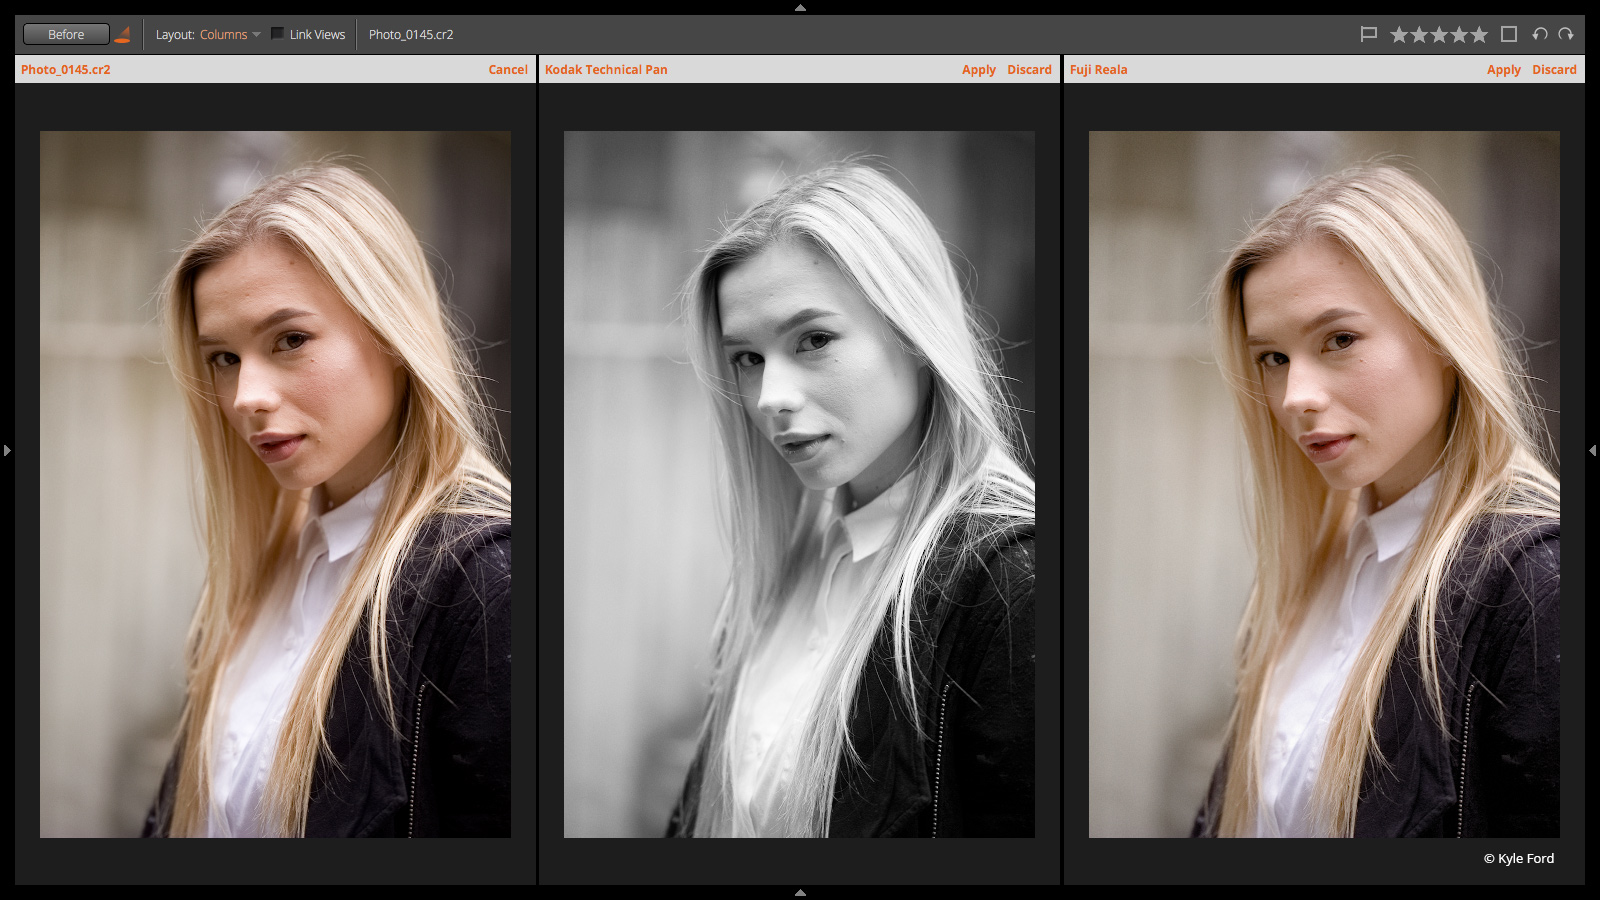 Diverting A Portrait By Kyle Ford Exposure Photo Editor Uninterrupted Creativity Preset Audition View Photoshop Cc 2015 Crack Portraiture Plugin Organizer Portraiture Plugin Photoshop Cc License Key dpreview Portraiture Plugin For Photoshop Cc